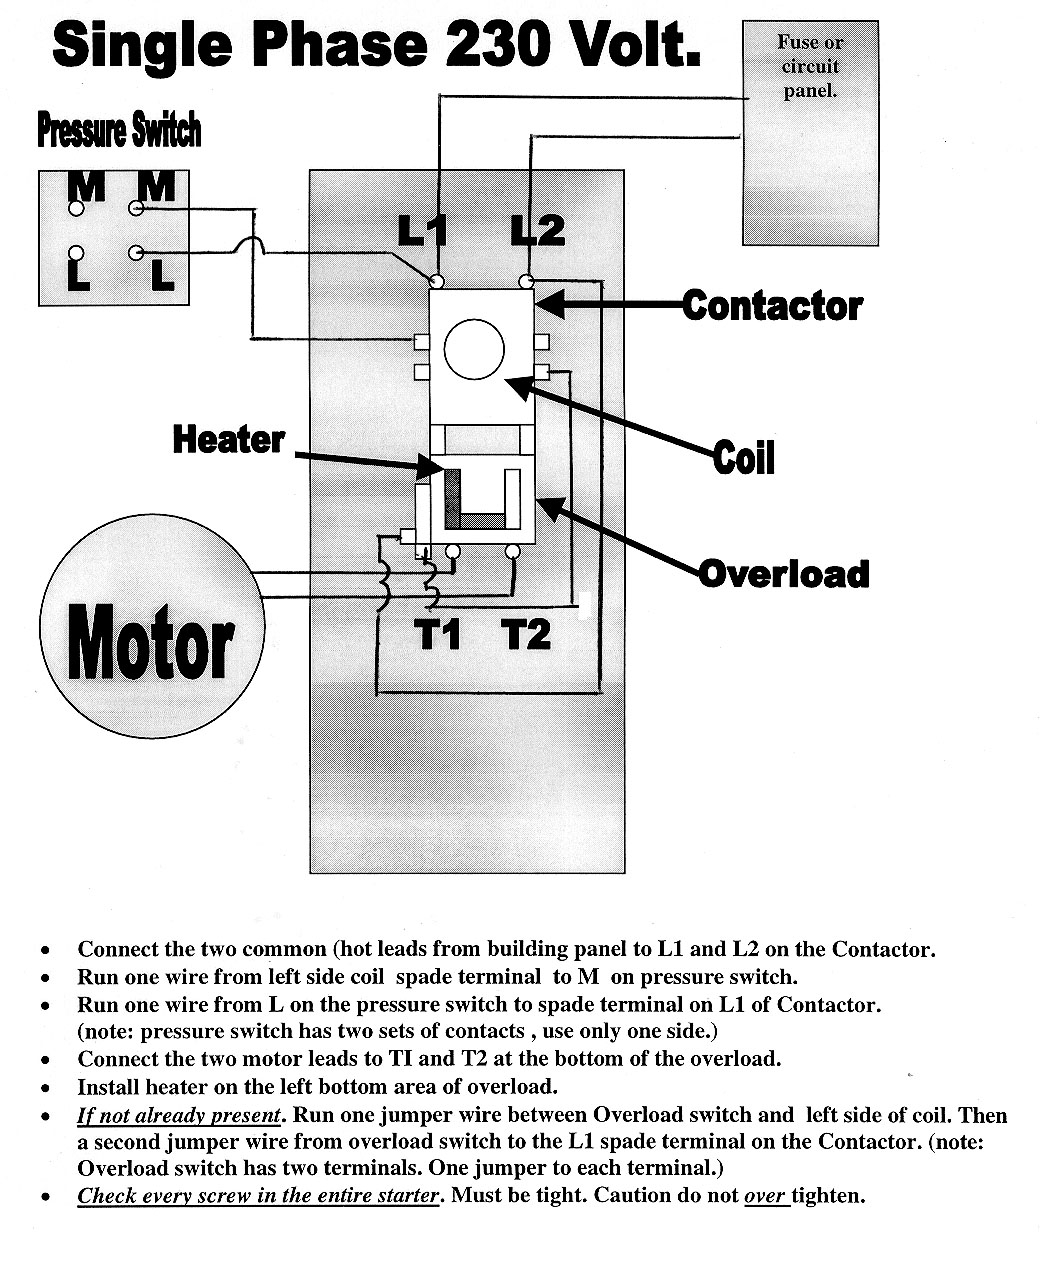 air compressor wiring diagram 230v 1 phase Collection-Fancy Electric Motor  Wiring Diagram Single Phase